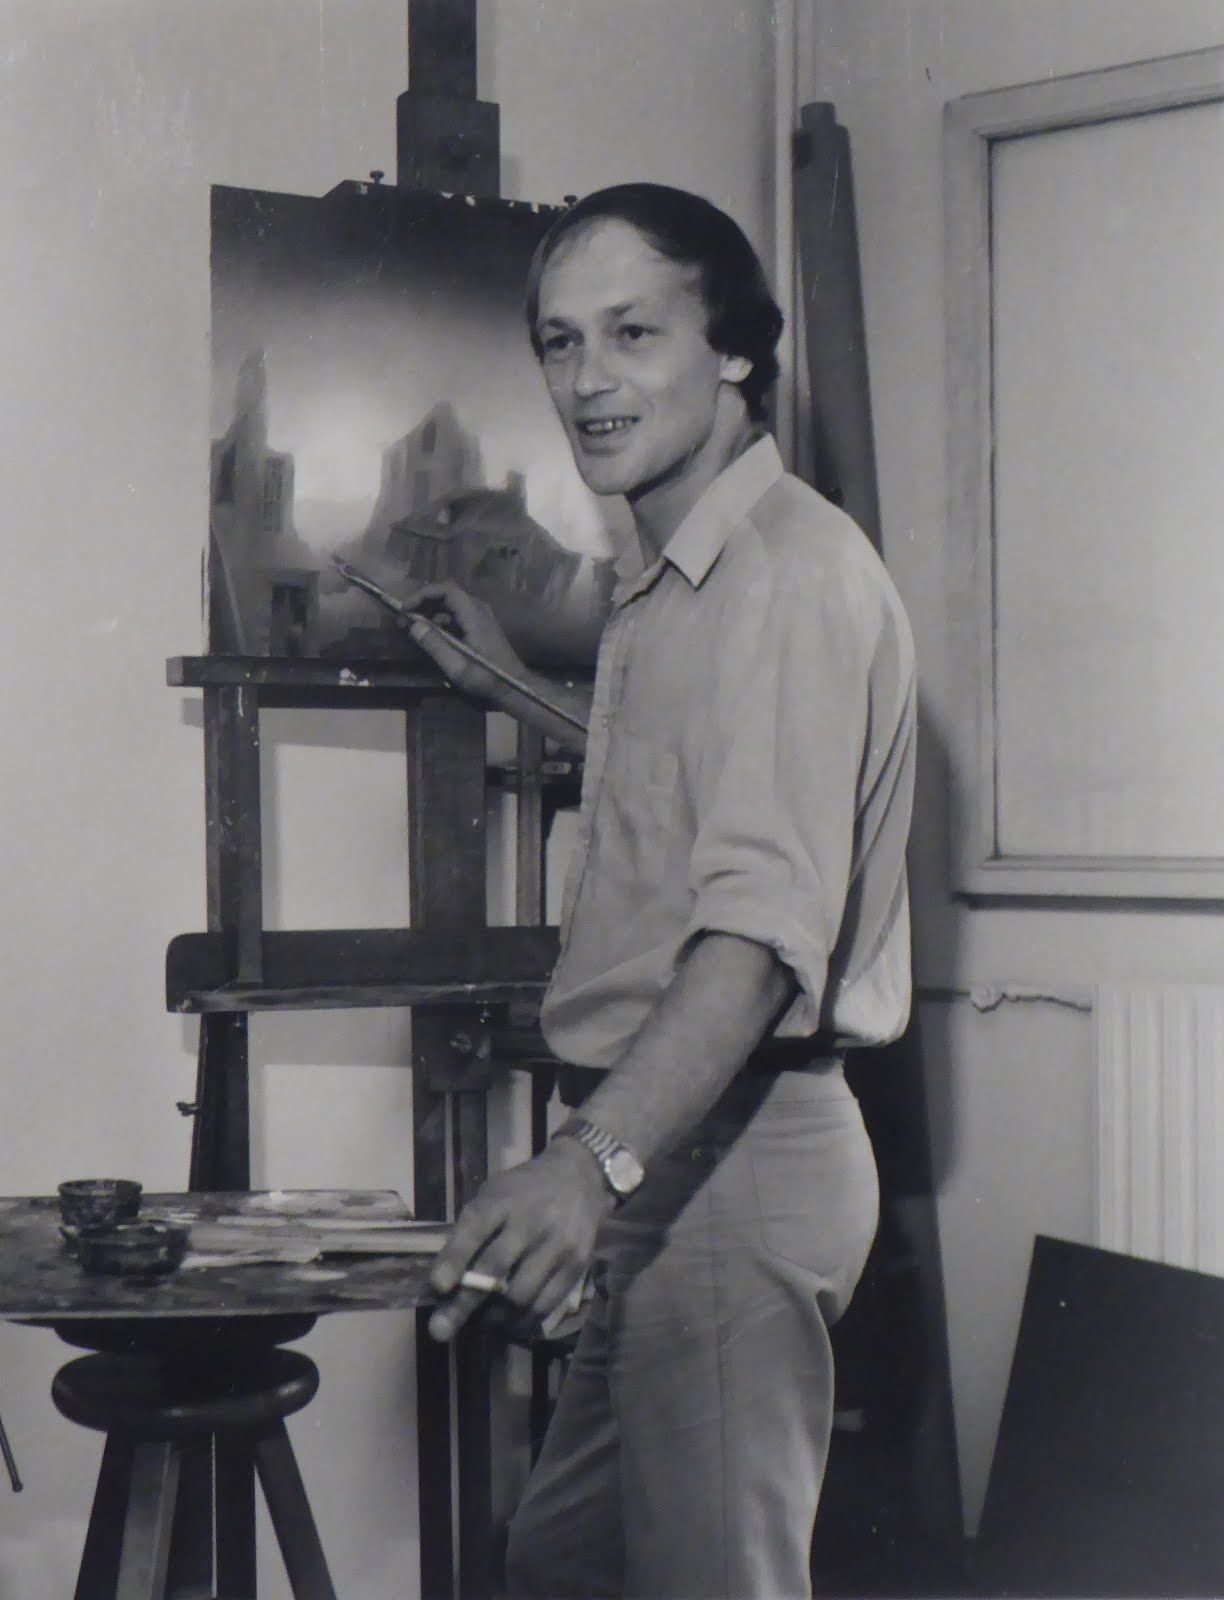 ALEXANDER RABINE AT THE EASEL